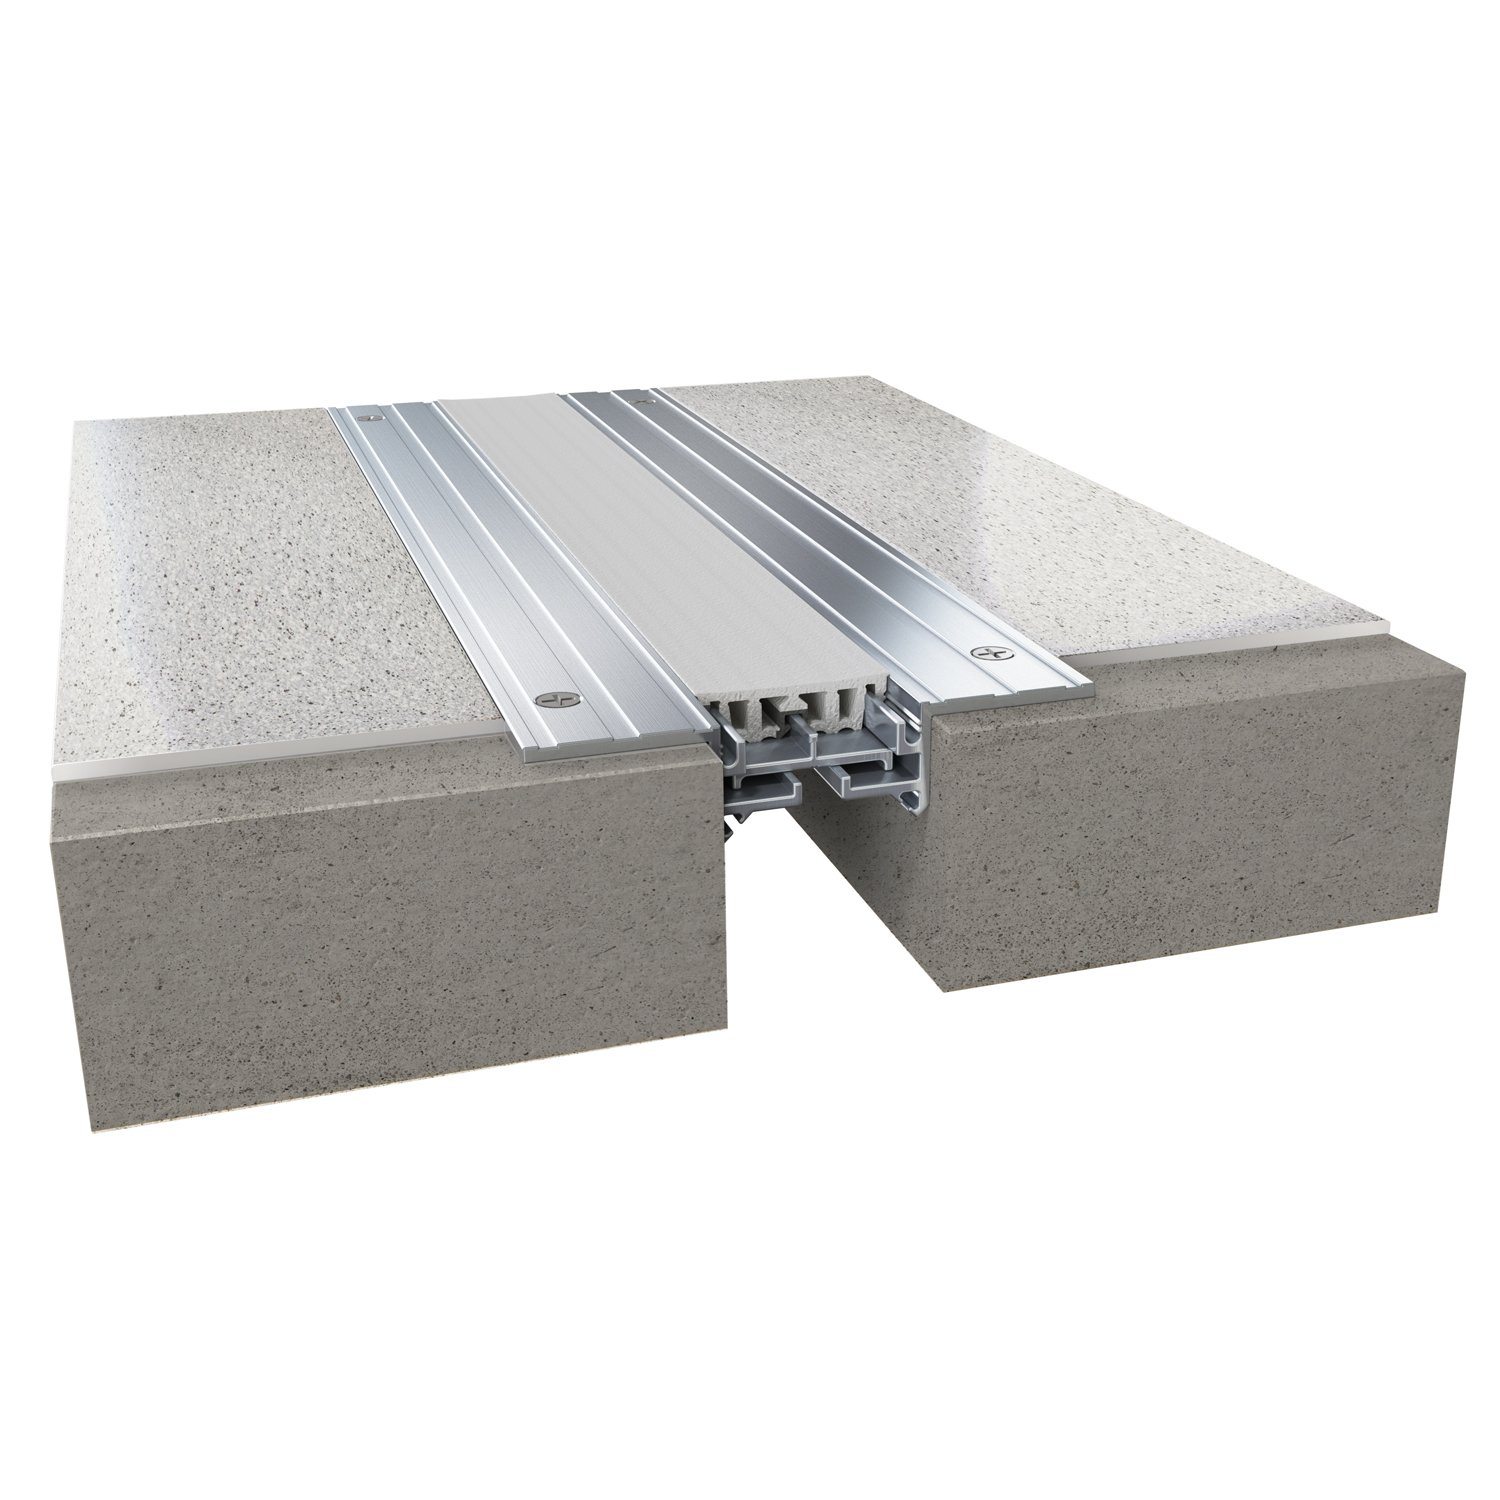 103 Series Floor System Expansion Joints